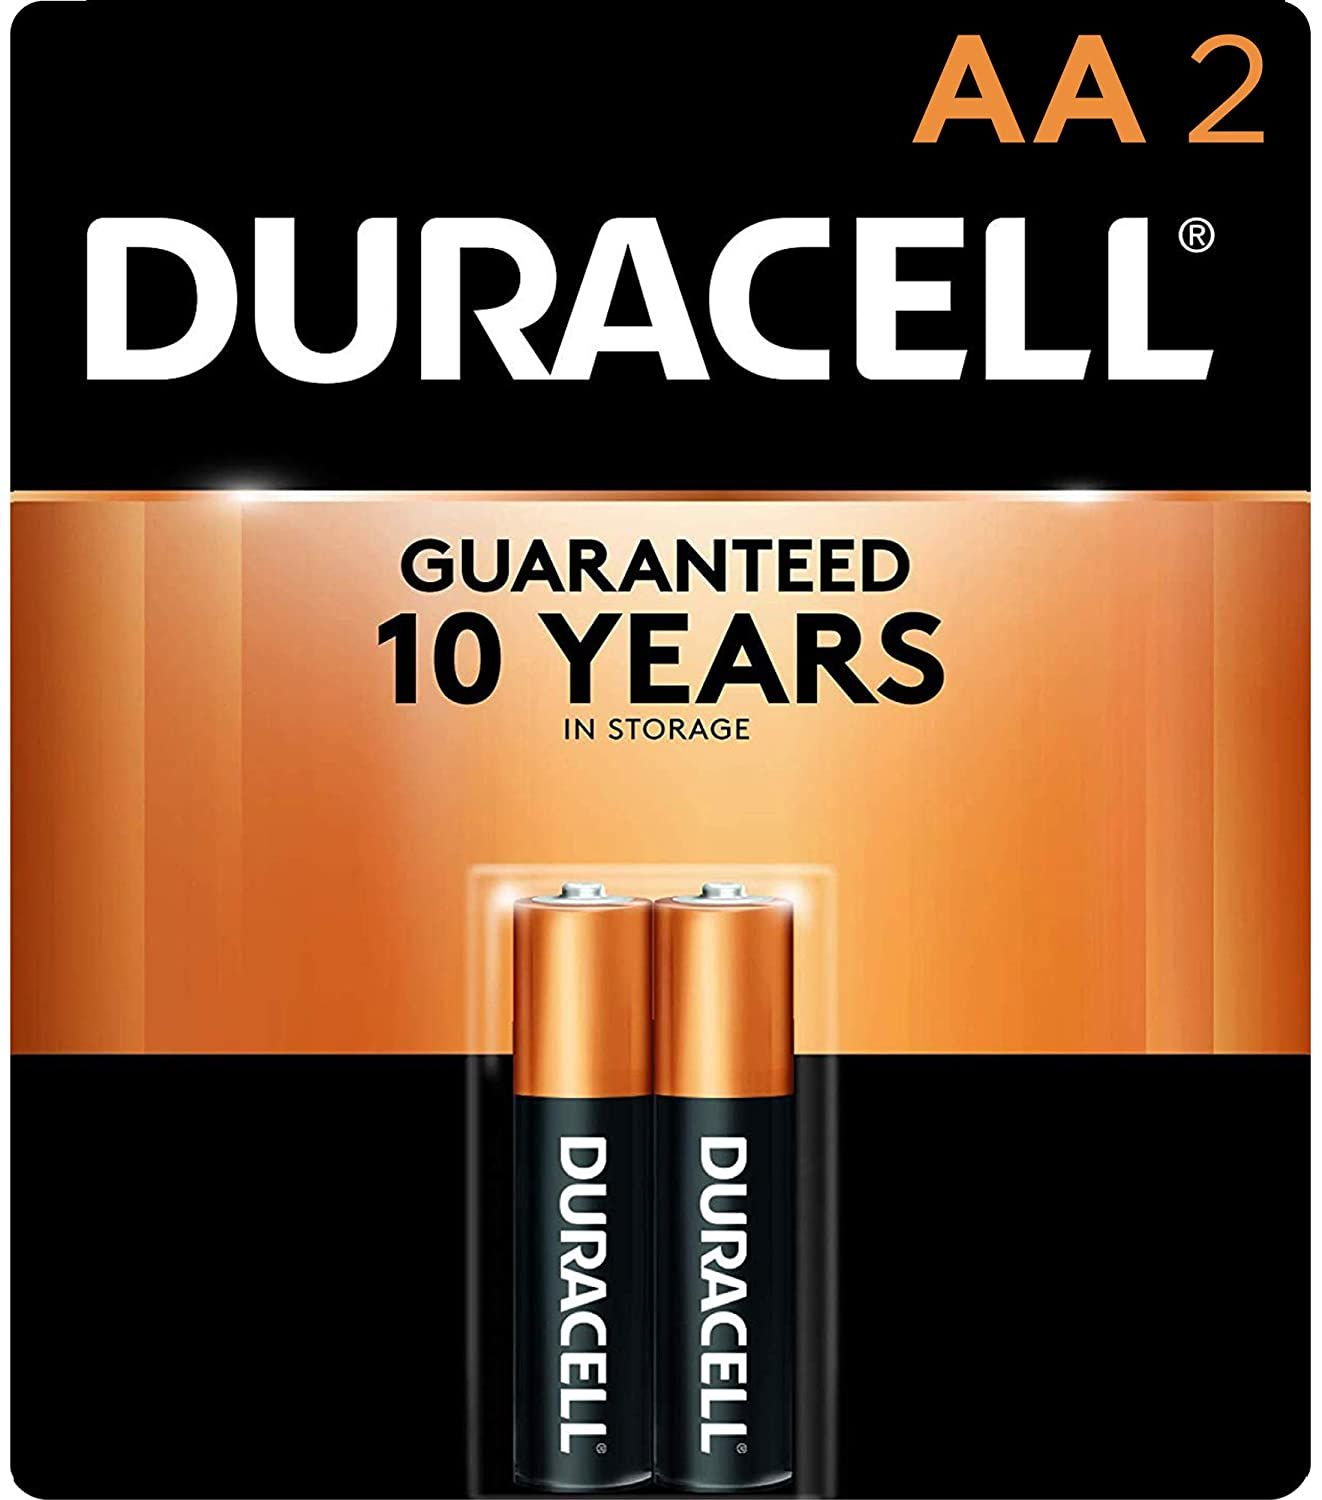 Duracell Coppertop 2 Count Aa Alkaline Batteries Long Lasting All Purpose Double A Battery For Duracell Alkaline Battery Duracell Batteries